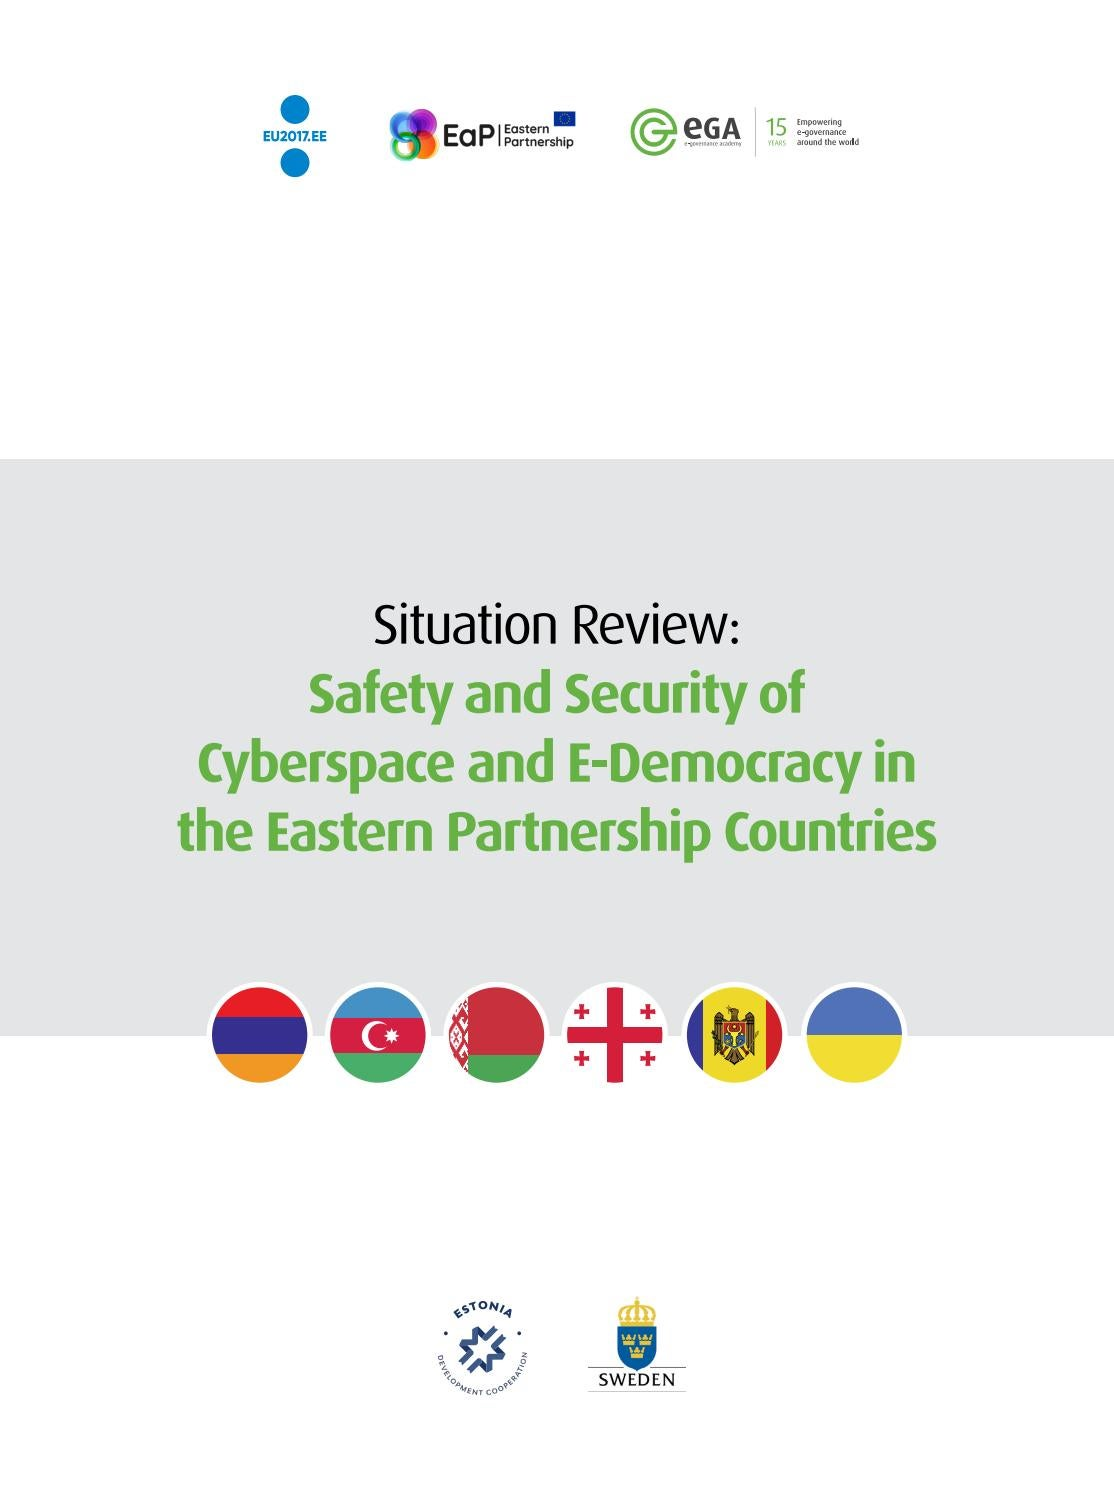 Situation Review: Safety and Security of Cyberspace and E-Democracy